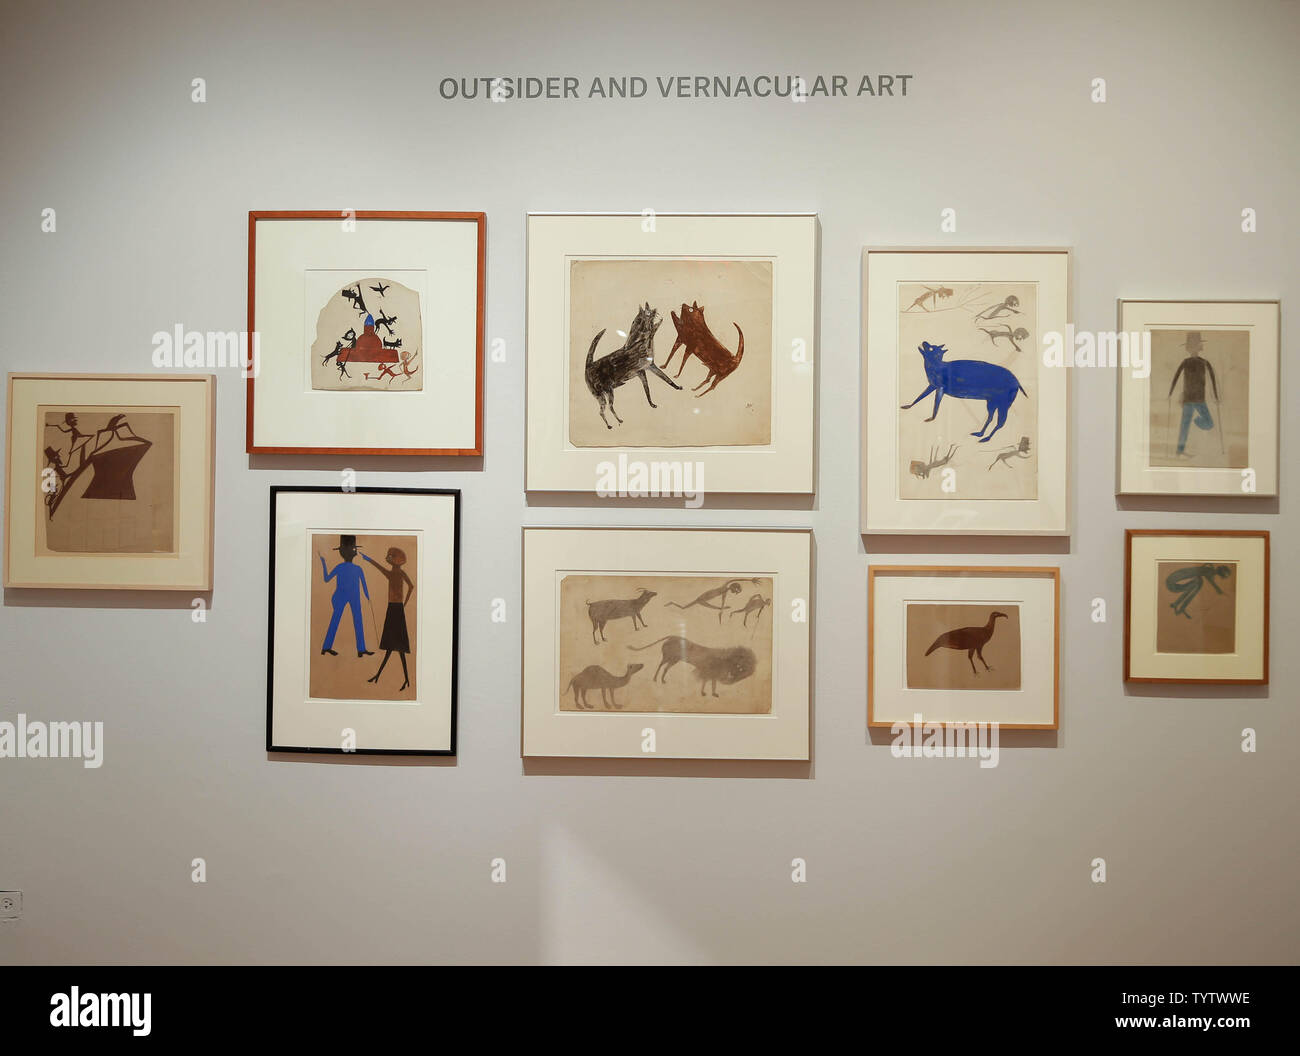 Works of art are on display at a press preview of an upcoming auction titled 'Outsider and Vernacular Art' at Christie's in New York City on January 12, 2019. The auction featuring Henry Darger's '148 At Jennie Richee During fury of storm are unsuccessfully attached (sic) by Glandelinians / 149 At Jennie Richee narrowly escape capture but Blengins come to rescue, double sided' , estd $250,000 - $500,000 and Bill Traylor's 'Goat, Camel, Lion and Figures', estd $75,000 - $100,000 takes place at Christie's on January 18th.     Photo by John Angelillo/UPI - Stock Image